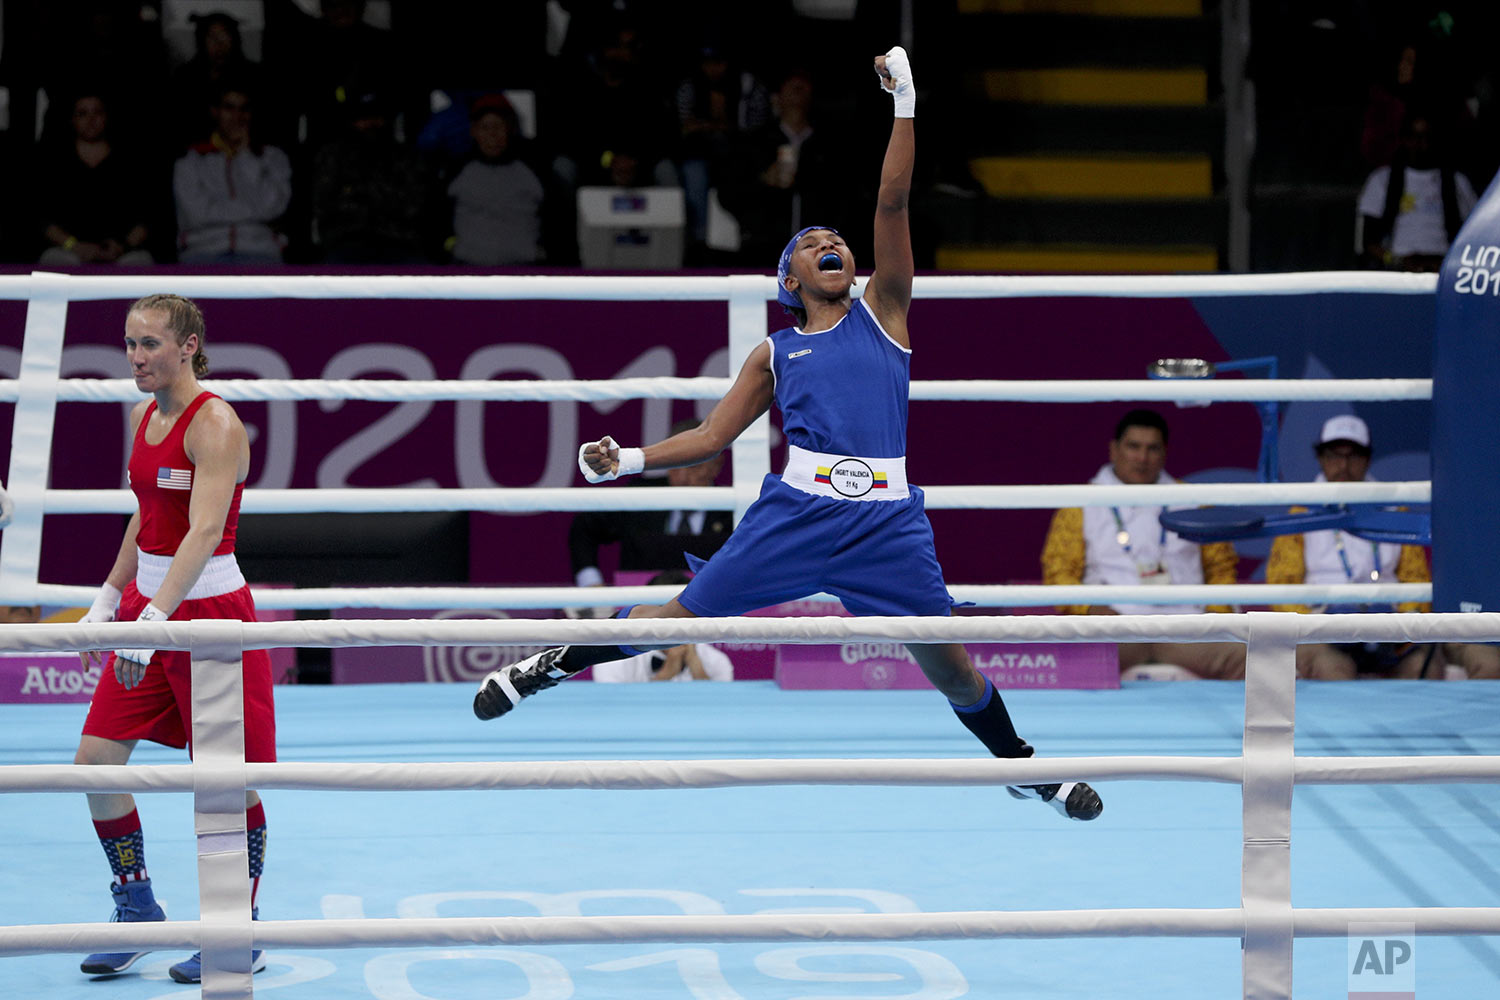 Ingrit Valencia of Colombia celebrates beating Virginia Fuchs of the United States to win the gold medal in their women's flyweight boxing final bout at the Pan American Games in Lima, Peru, Friday, Aug. 2, 2019. (AP Photo/Martin Mejia)